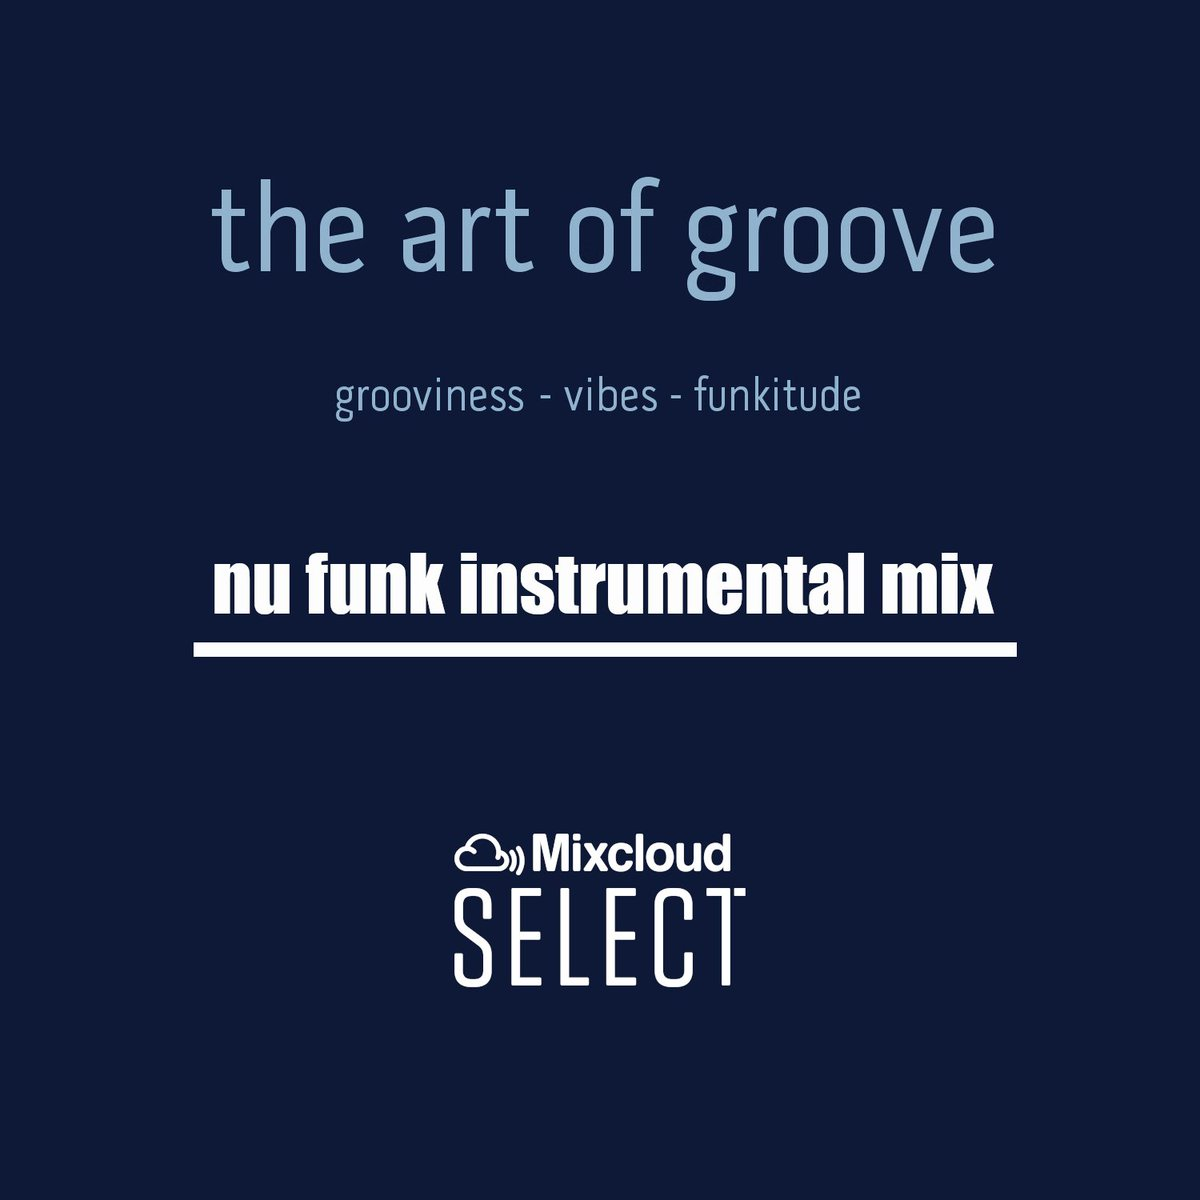 Countdown! Only 3 more days available! Don't sleep! https://www.mixcloud.com/chaaser/nu-funk-instrumental/ … #GetCloser #mixcloudselect #mixcloud #nufunk #deepfunk #heavyfunk #hammondfunk #groovy #funky #funkymusic #djset #dj #djmix #djmixes